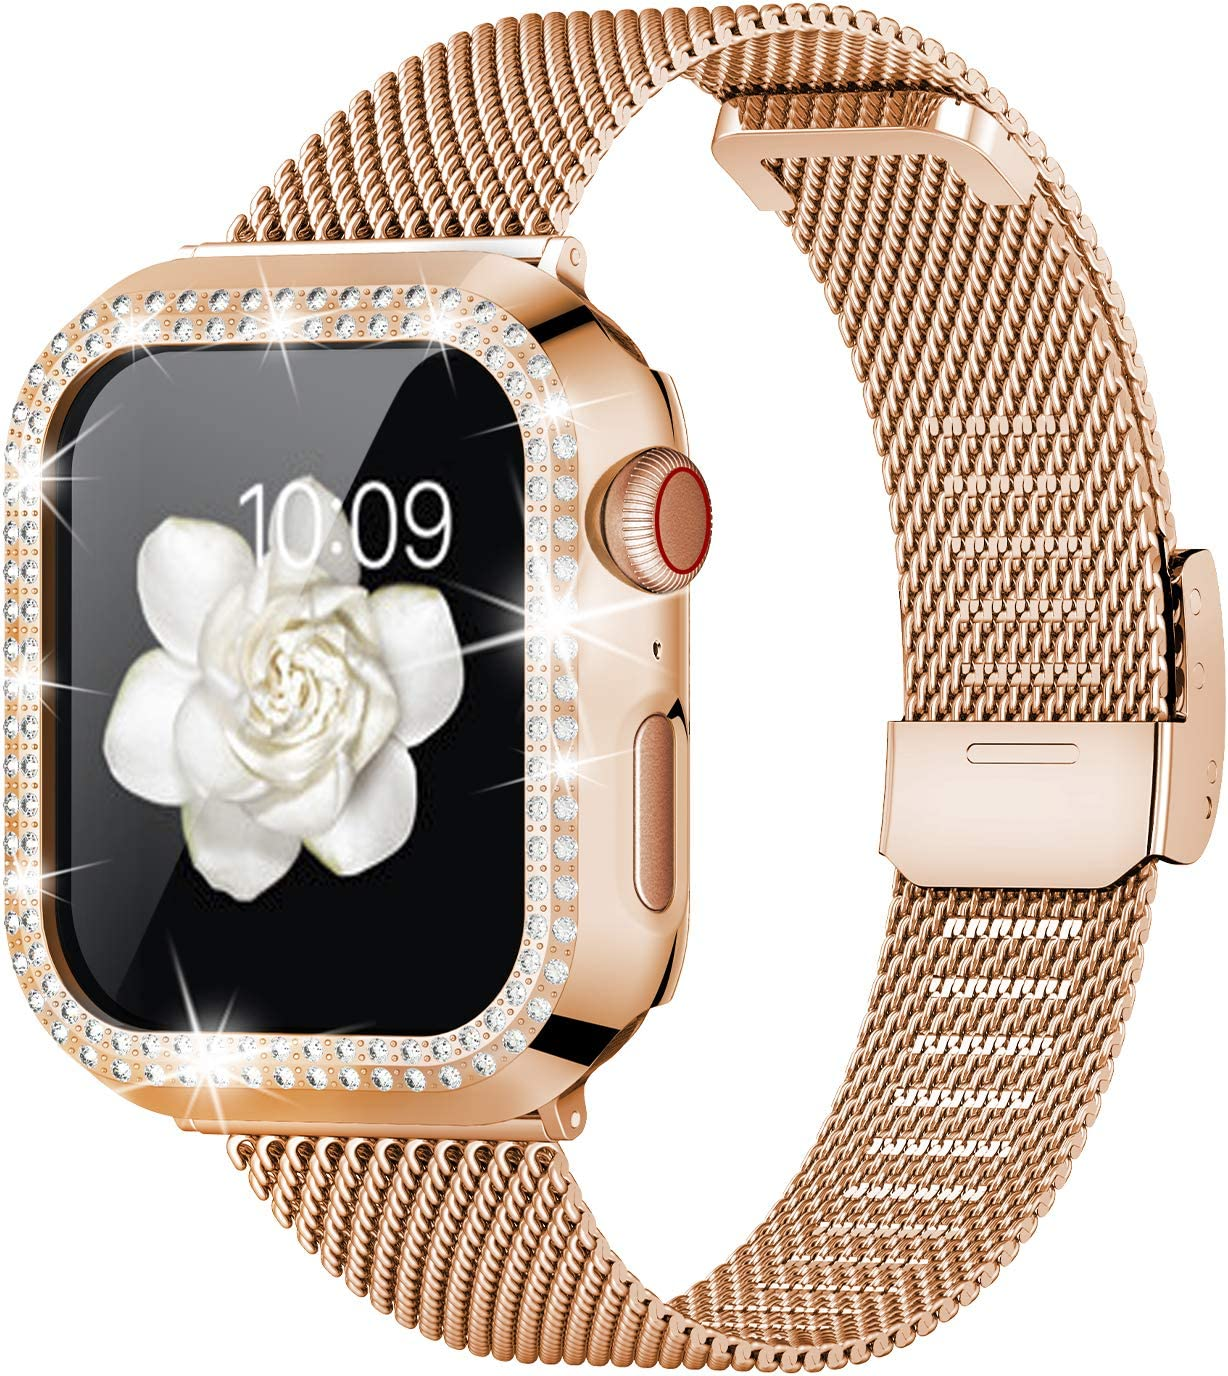 Goton Compatible for Apple Watch Band with Bling Case 38mm 40mm 42mm 44mm, Women Stainless Steel Mesh Strap with Luxury Diamond Protective Case for iWatch Series 5 4 3 2 1 (Rose Gold, 38mm)